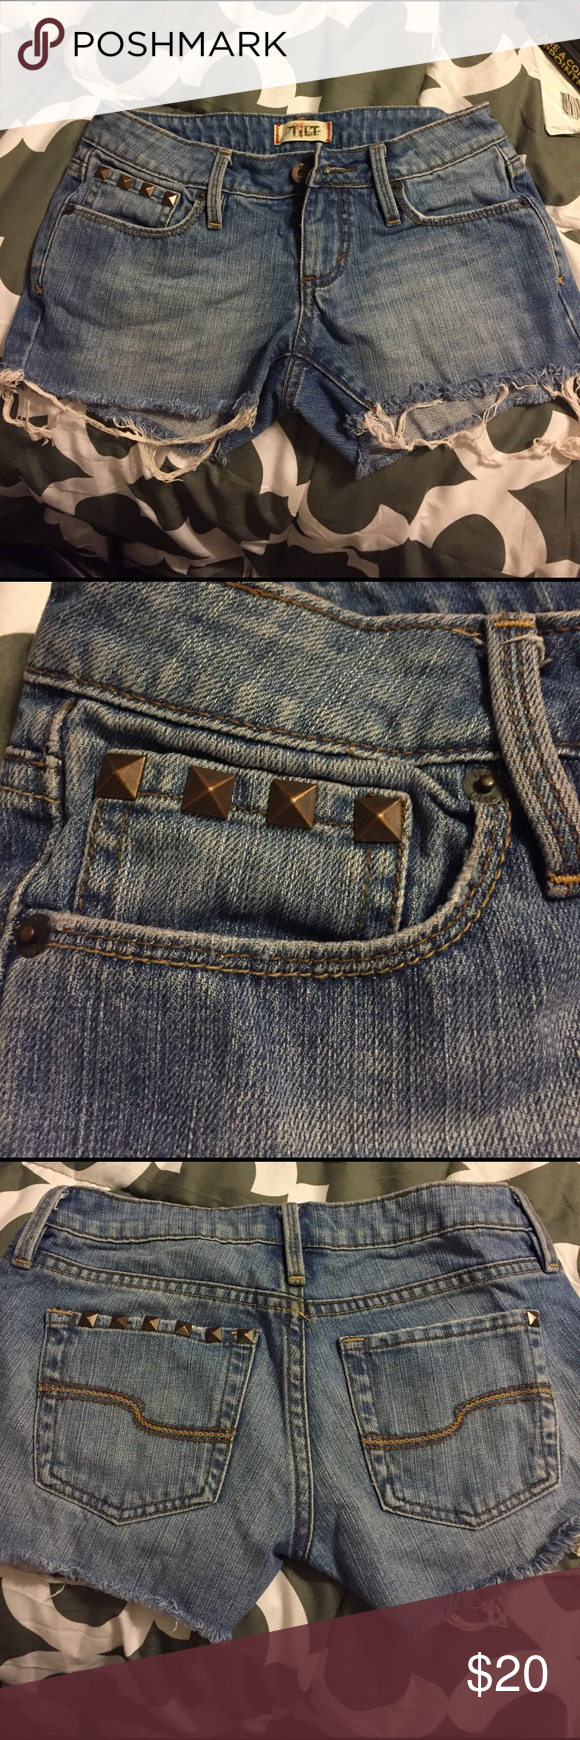 "Distressed Tilt cutoff jean shorts. Tilt brand (old PacSun denim brand) size 0 but runs small. Closer to a tight fitting 00. Cutoff jeans shorts with spike embellishment over pockets. 2"" inseam. Only wore them a handful of times. No visible wear other than the furthest left spike on back pocket is missing (pictured). Medium wash. Clean from a pet/smoke free home. PacSun Jeans"